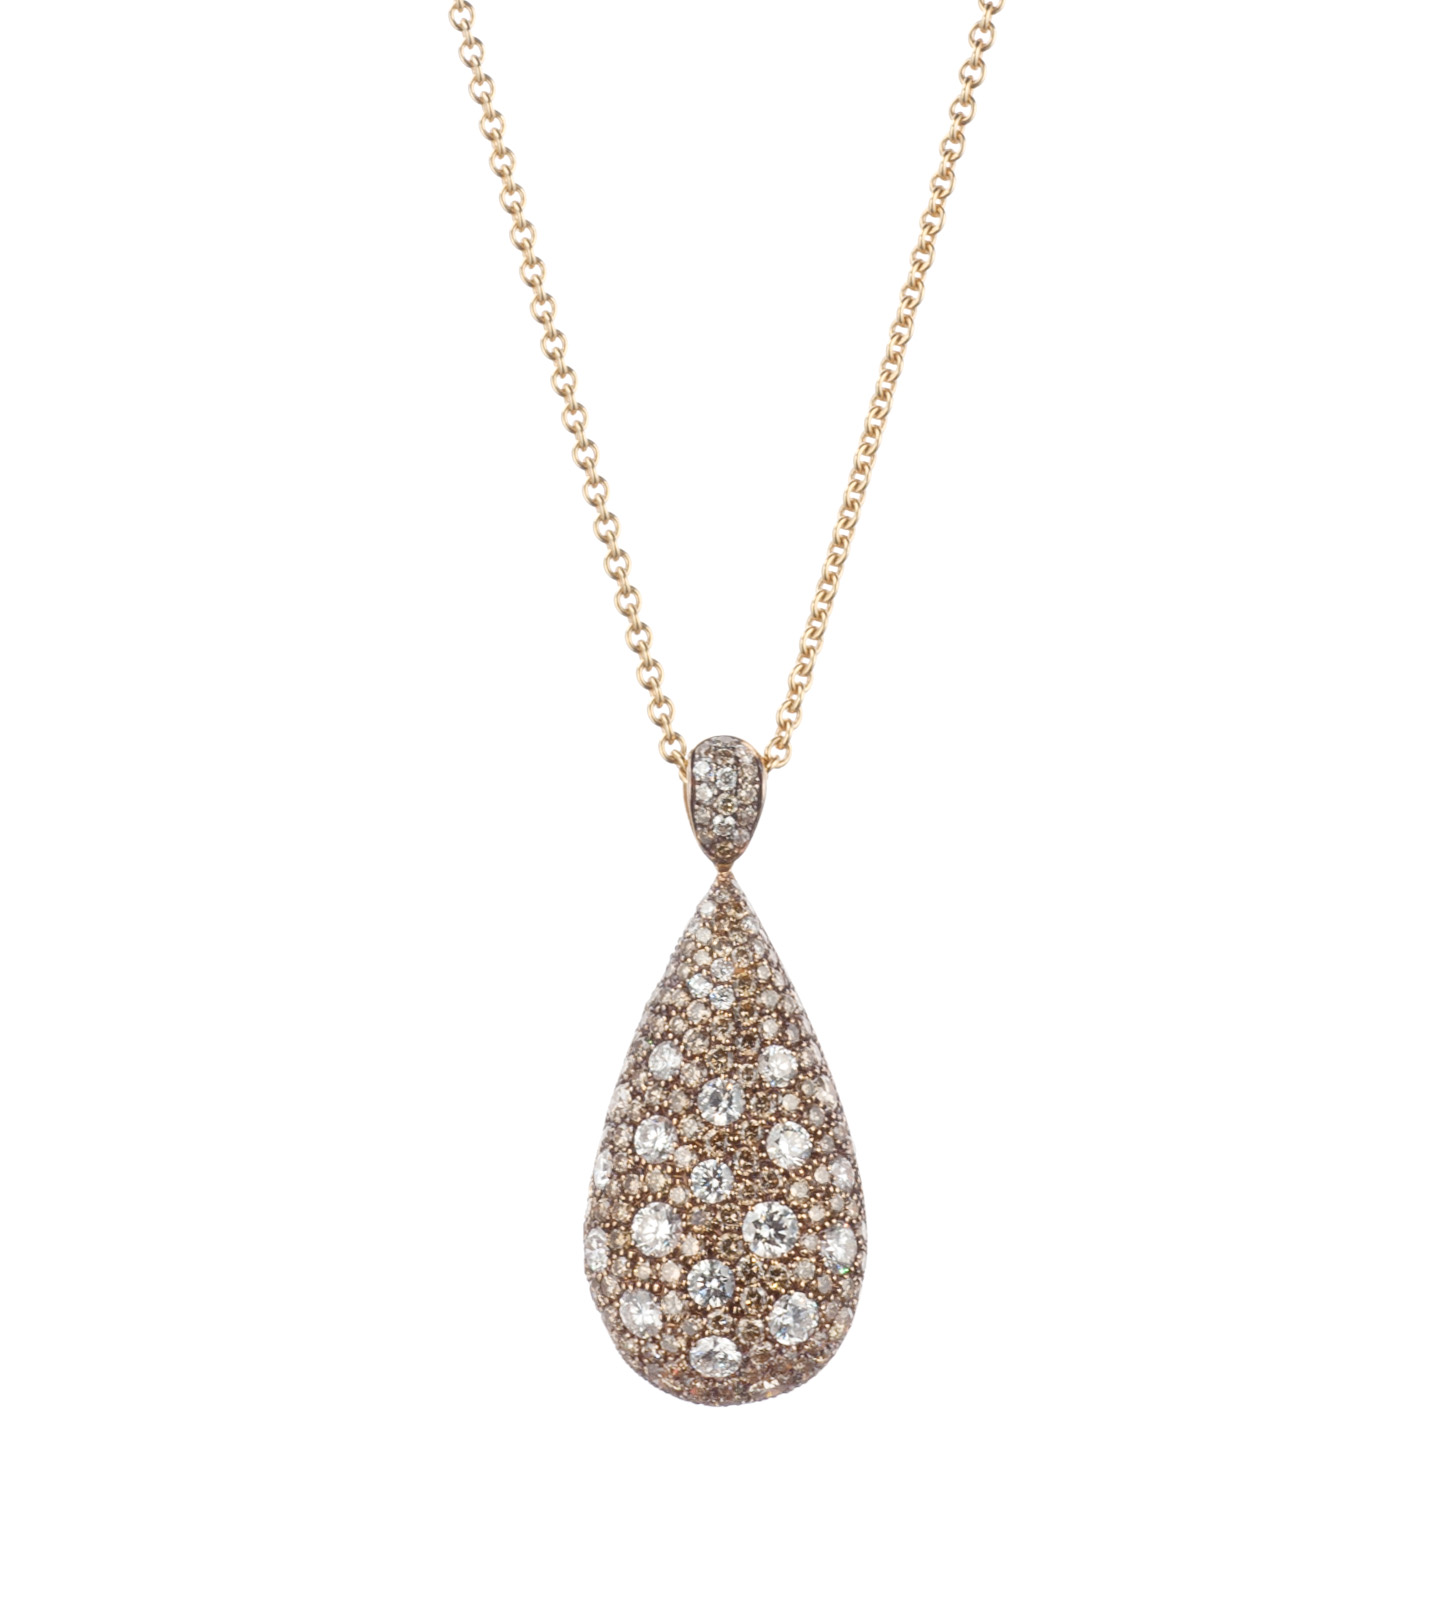 Rose gold and brown diamond necklace